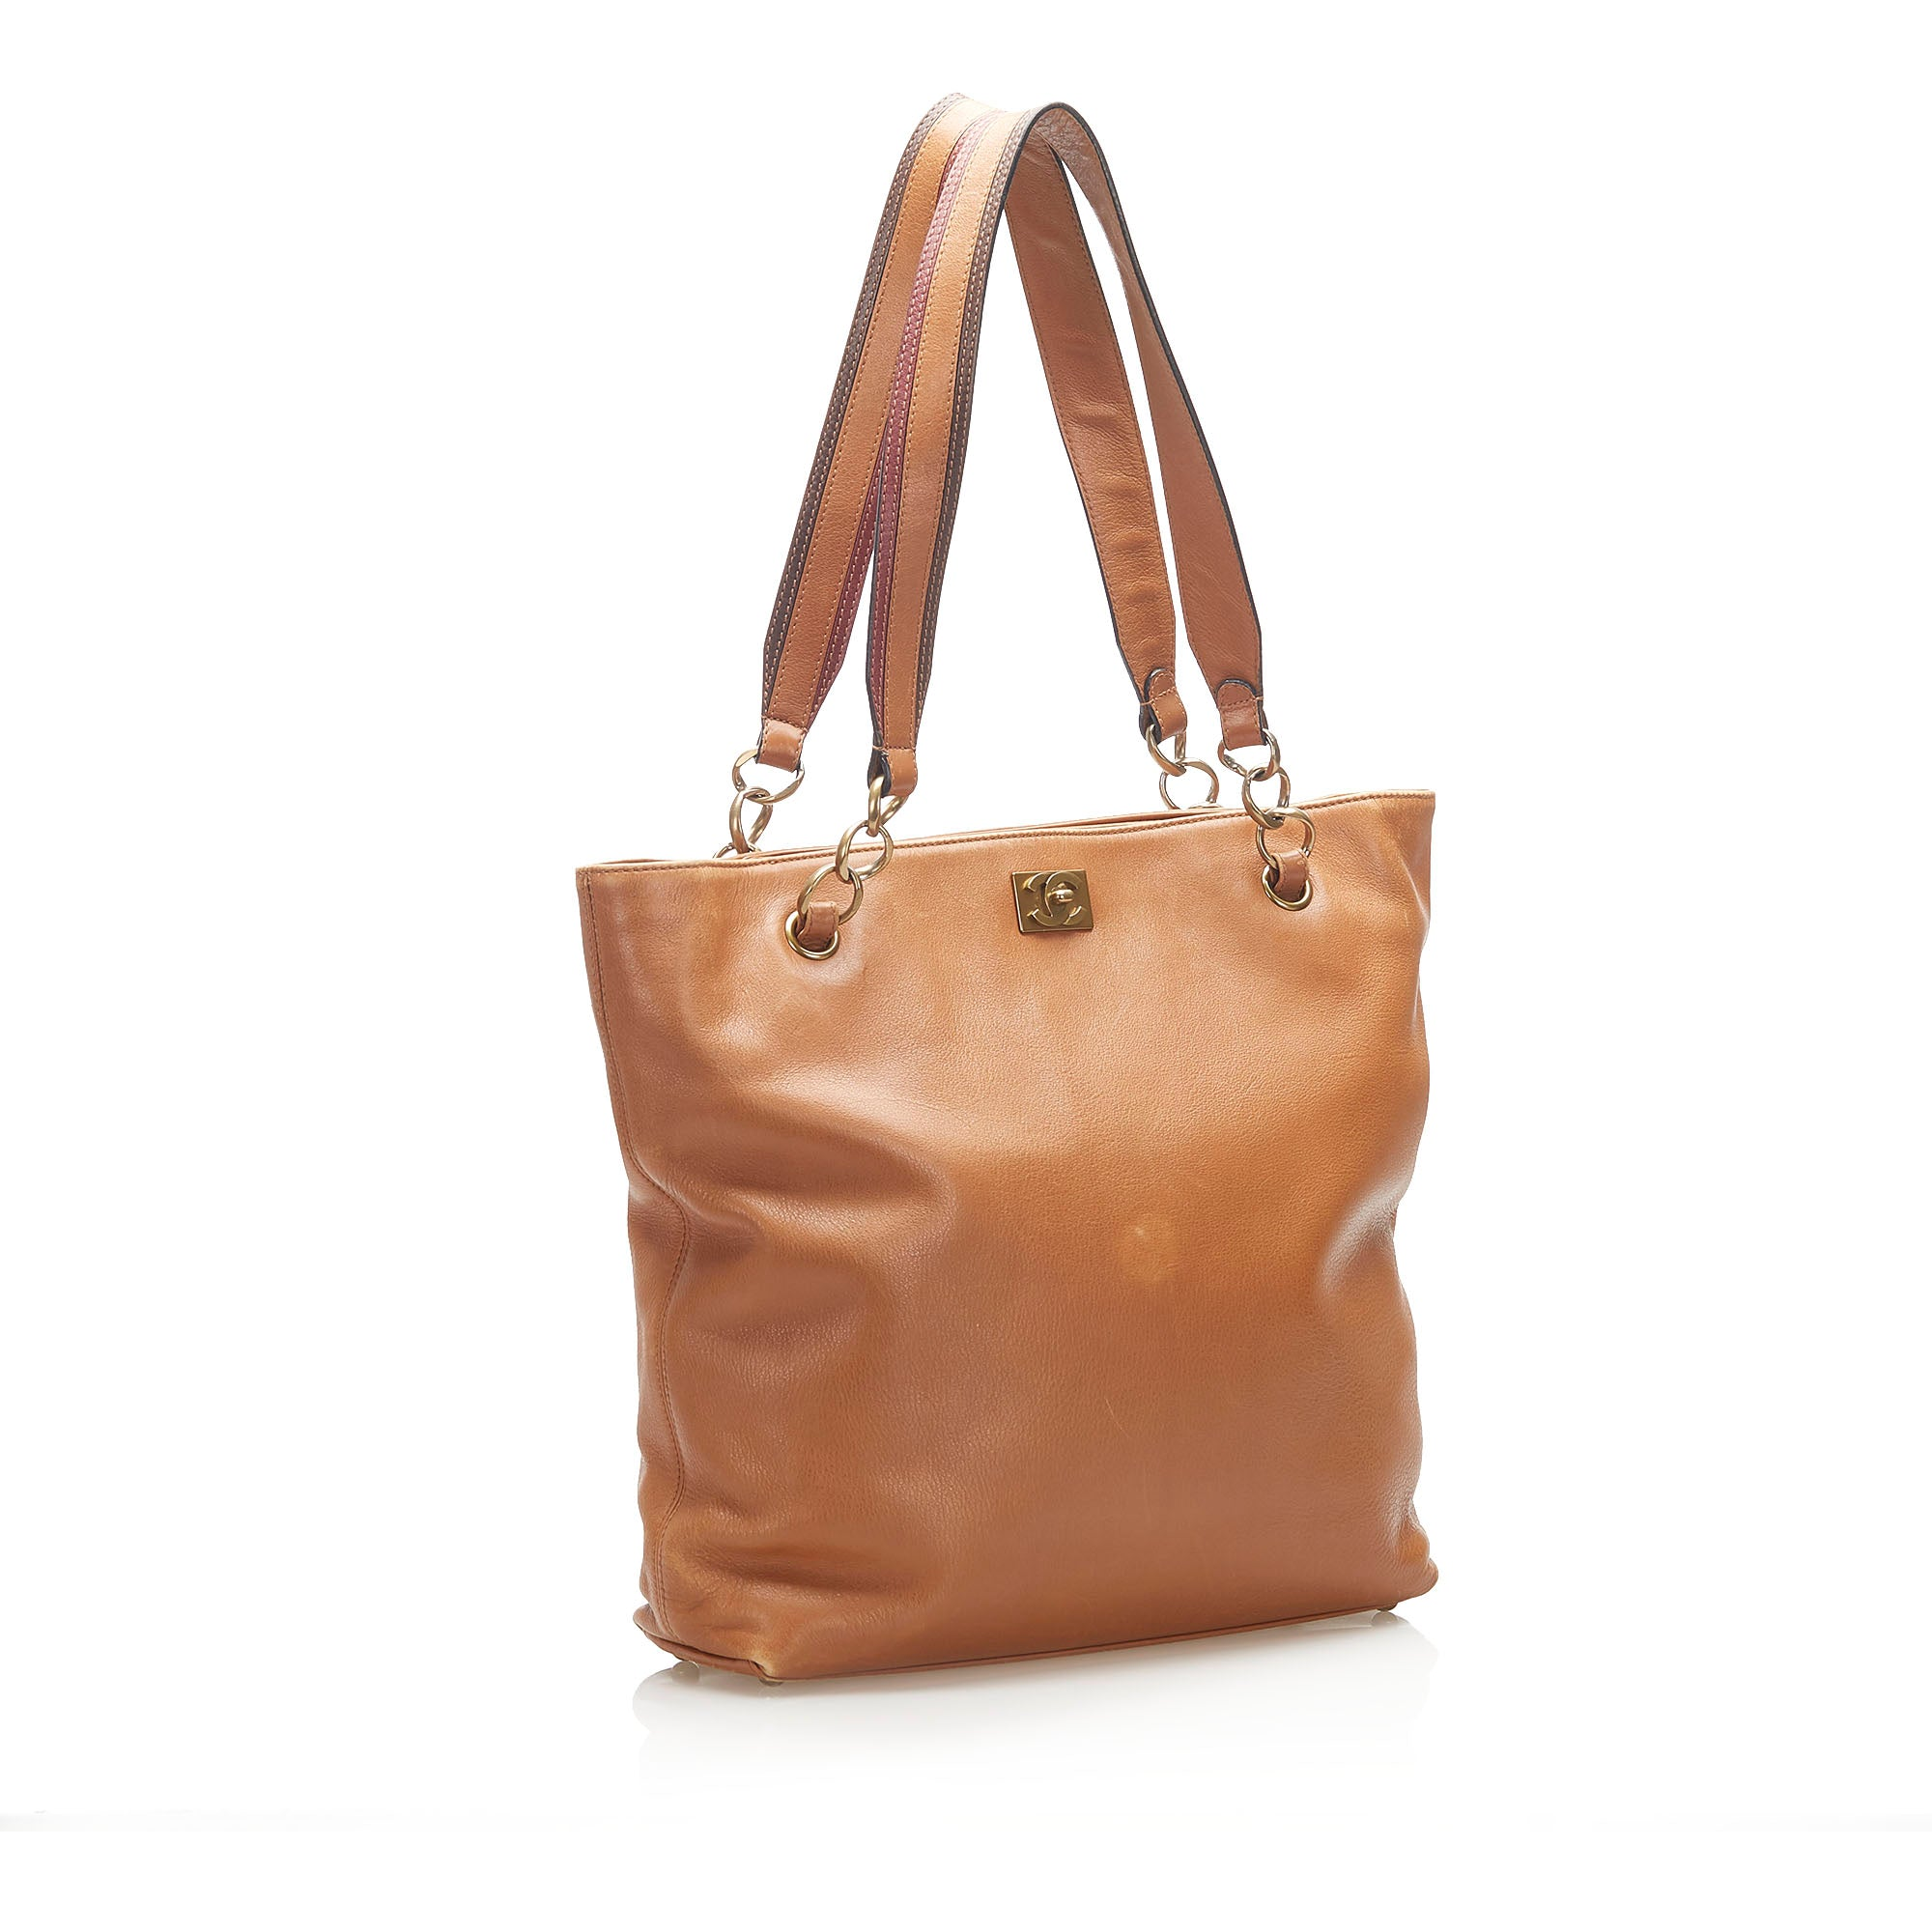 Chanel Brown Lambskin Leather Tote Bag